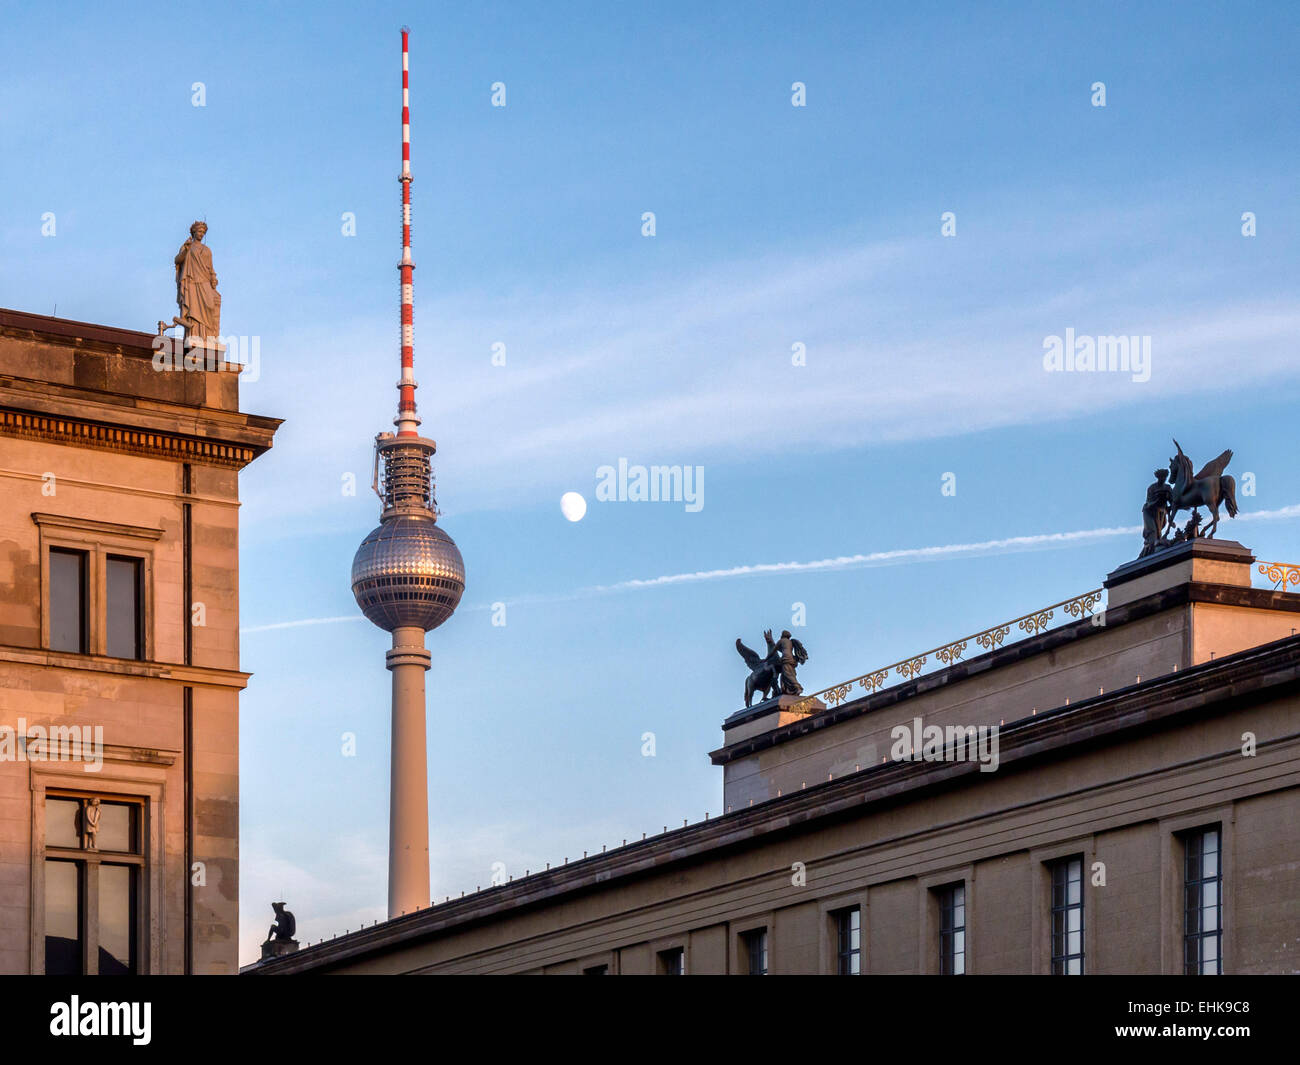 Museum Island buildings, TV tower, rooftop sculptures, moon and blue sky - Museum insel, Mitte, Berlin - Stock Image